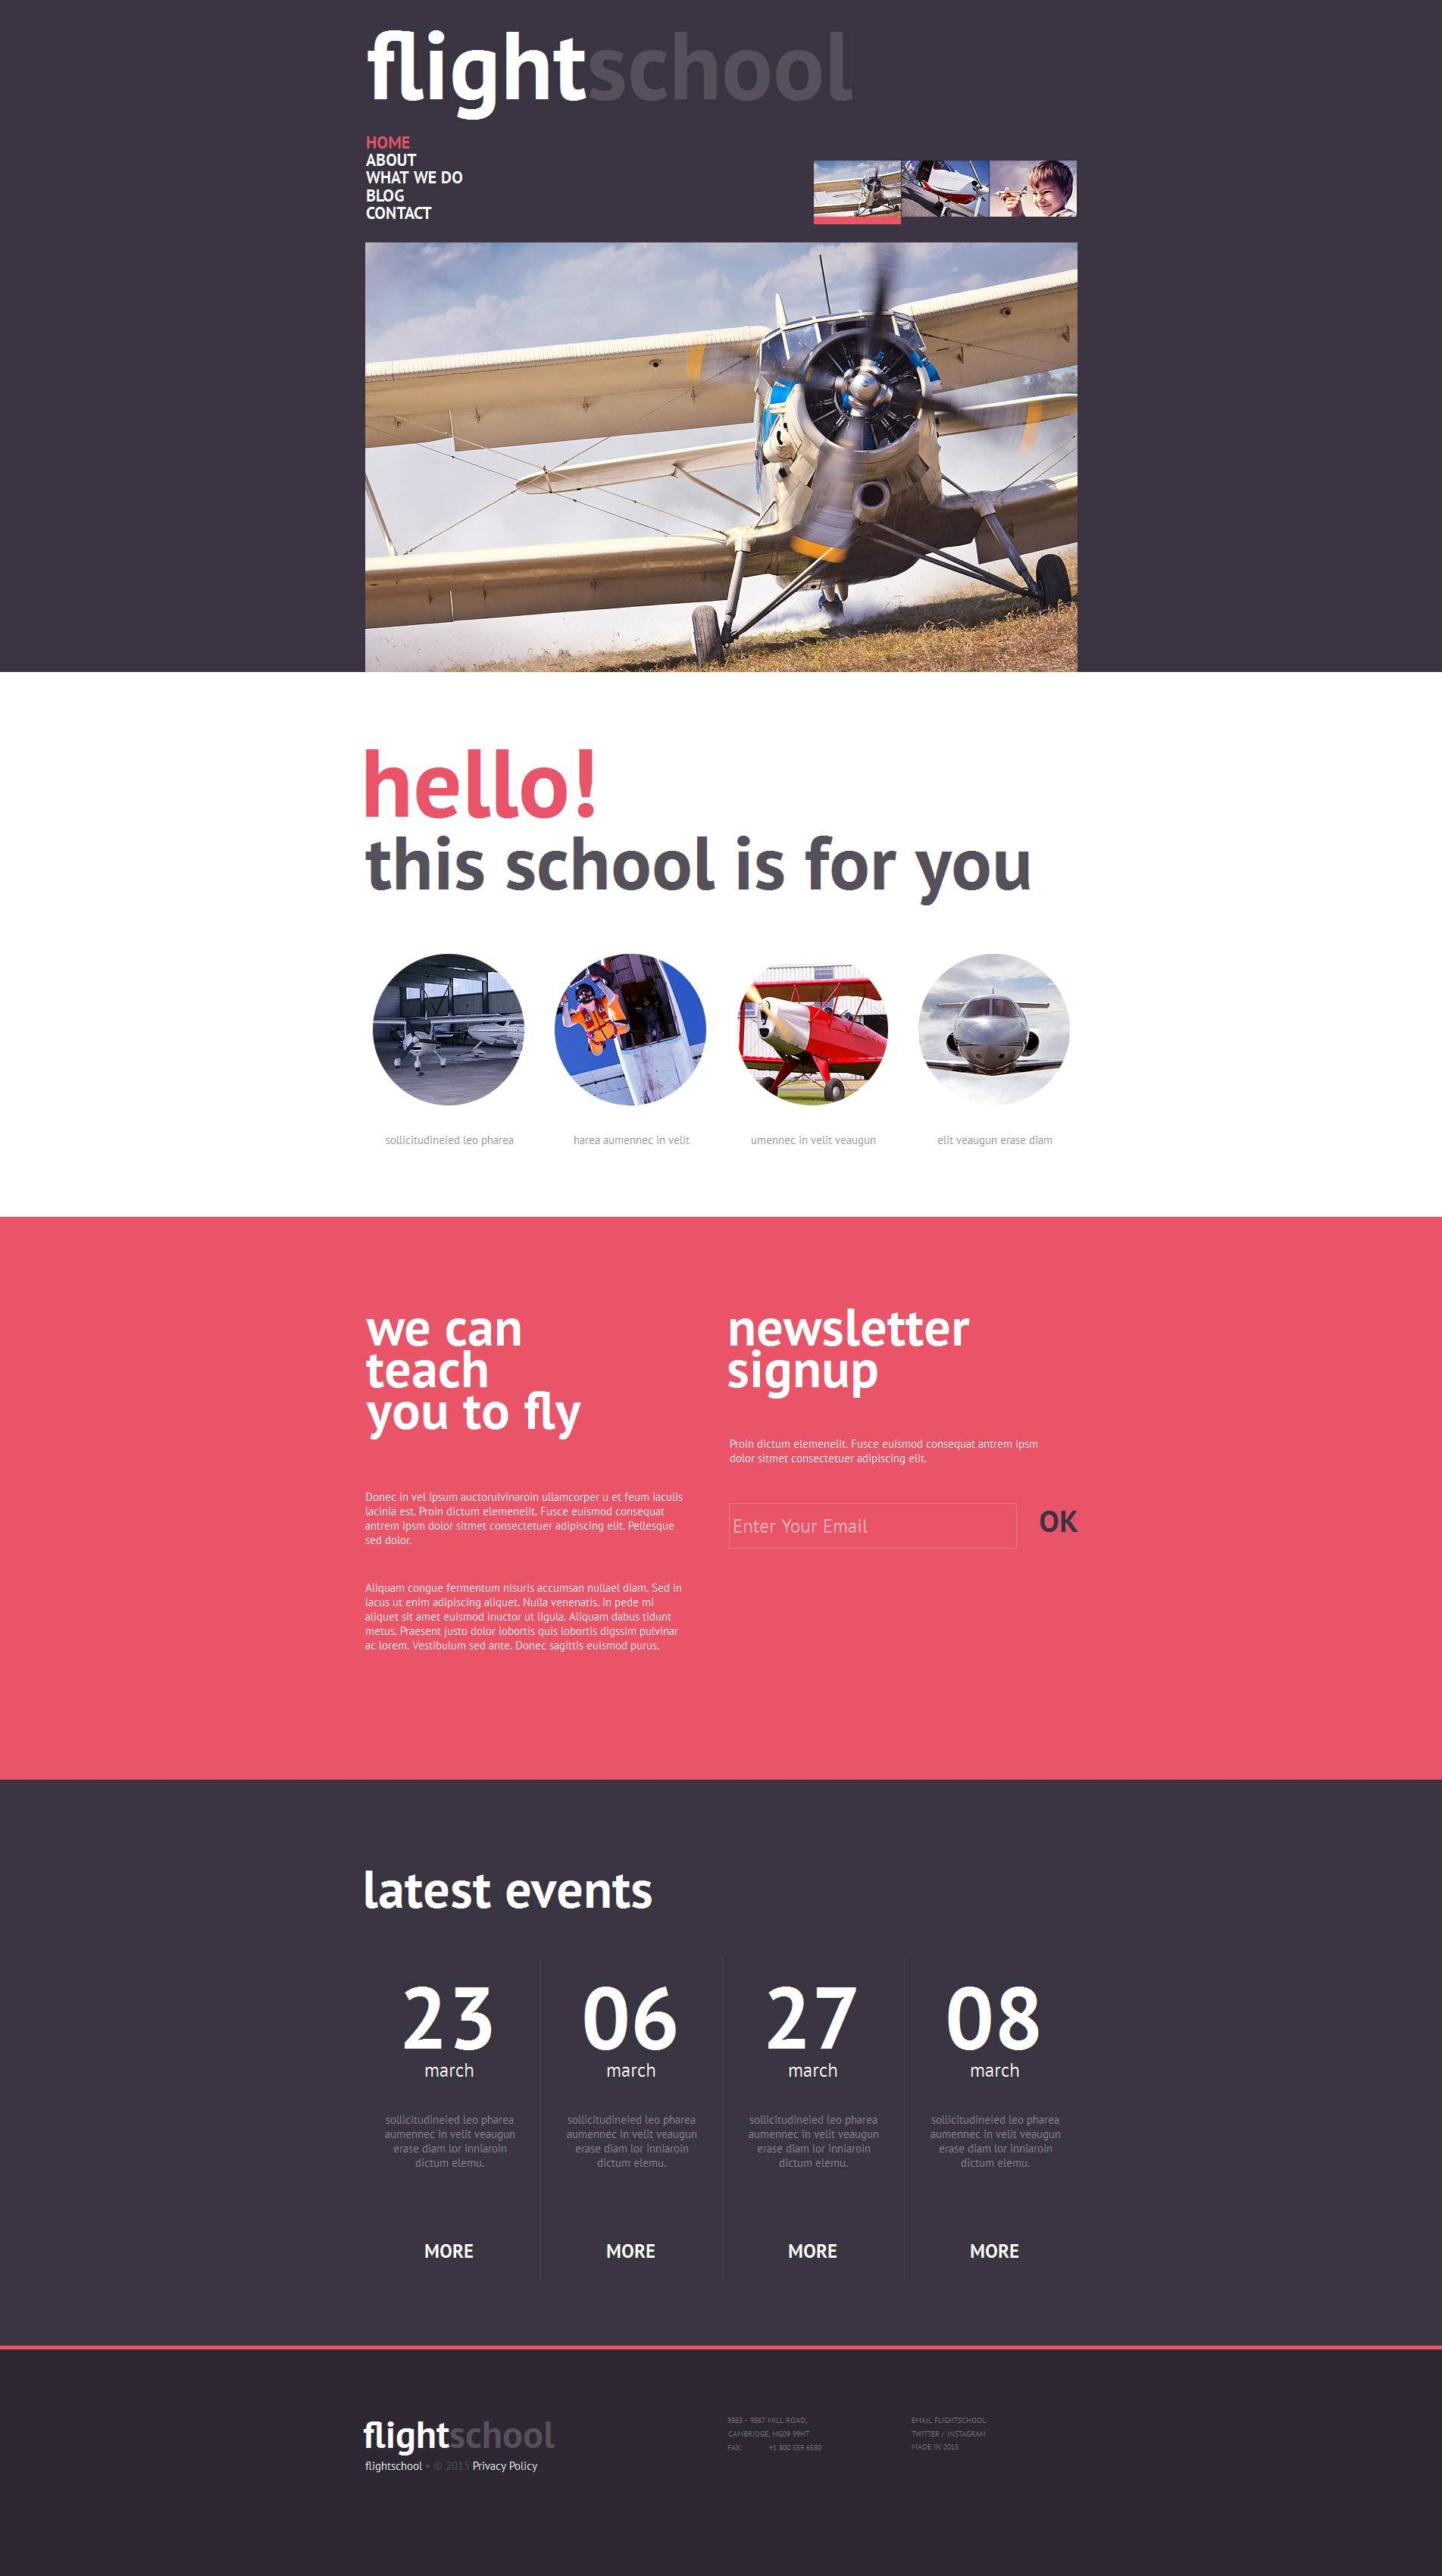 The Flight School Moto CMS HTML Design 53211, one of the best Moto CMS HTML templates of its kind (education), also known as flight school Moto CMS HTML template, aviation careers Moto CMS HTML template, airplane Moto CMS HTML template, pilot Moto CMS HTML template, sky Moto CMS HTML template, aircraft Moto CMS HTML template, Air Force civil aviation Moto CMS HTML template, transport Moto CMS HTML template, aerospace Moto CMS HTML template, airport Moto CMS HTML template, flying Moto CMS HTML template, training Moto CMS HTML template, test Moto CMS HTML template, piloting and related with flight school, aviation careers, airplane, pilot, sky, aircraft, Air Force civil aviation, transport, aerospace, airport, flying, training, test, piloting, etc.